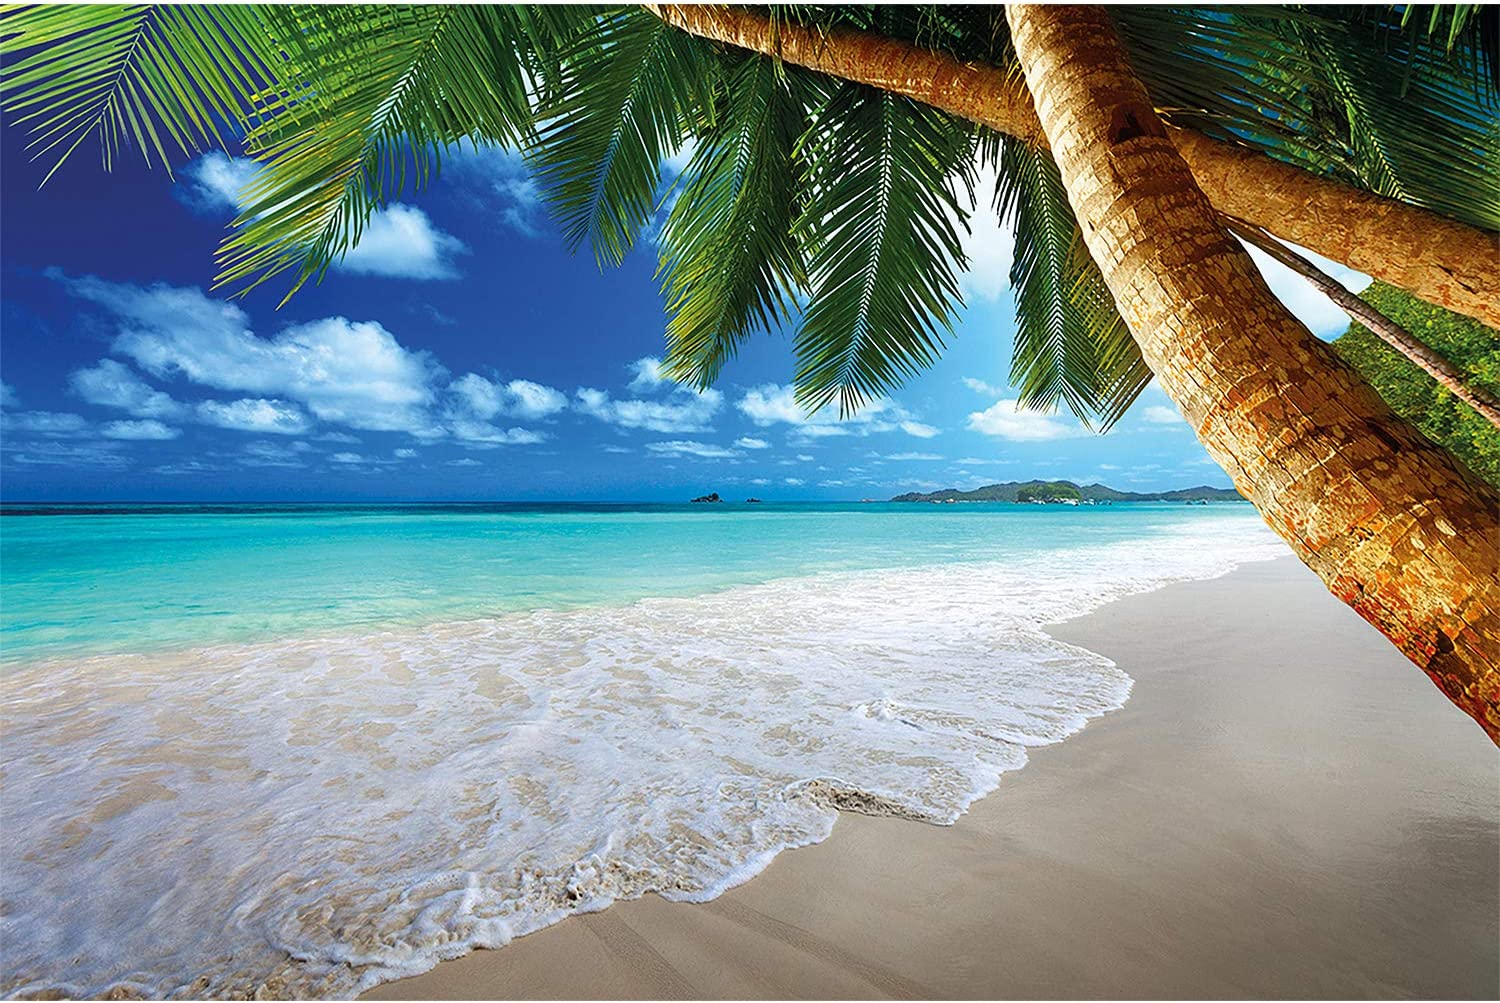 GREAT ART Poster – Palm Beach ? Picture Decoration Caribbean Dream Bay Paradise Island Tropical Coconut Trees Ocean Holiday Blue Sky Image Photo Decor Wall Mural (55x39.4in - 140x100cm)